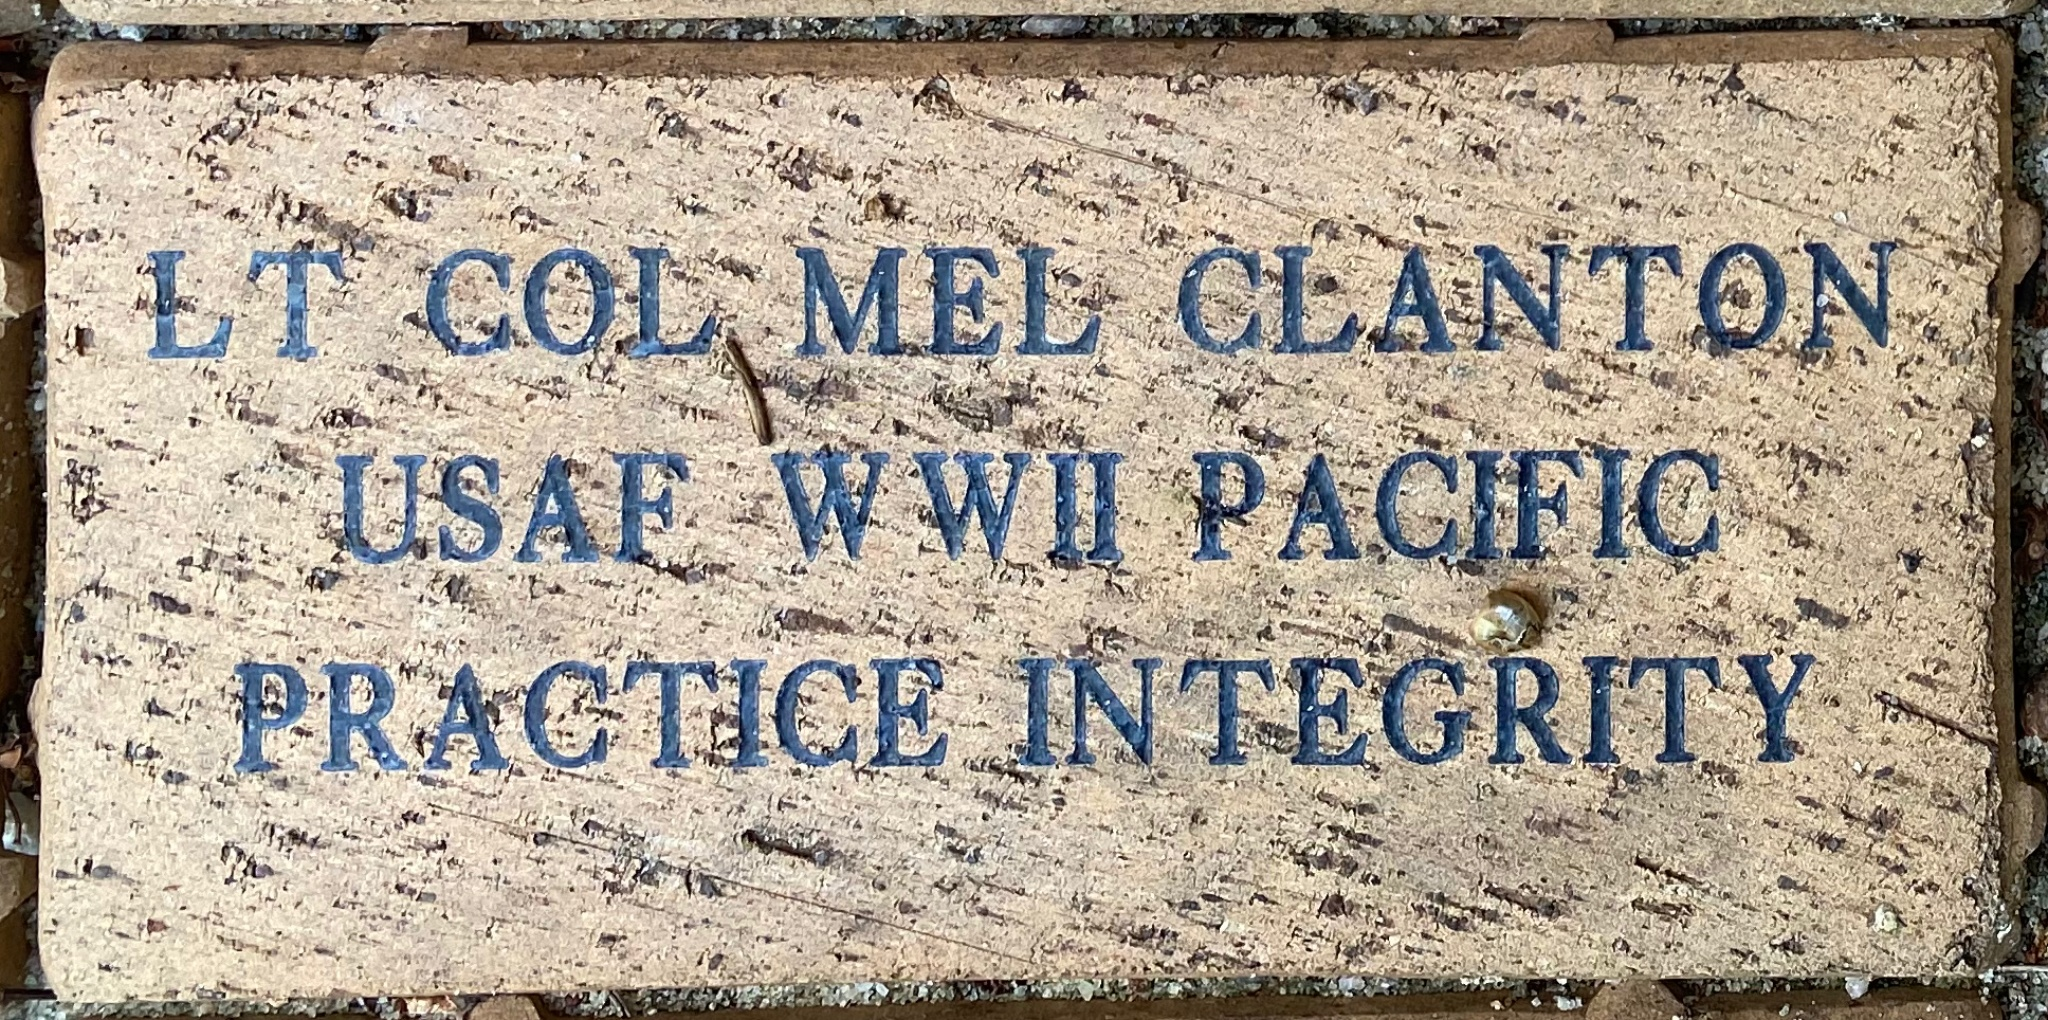 LT COL MEL CLANTON USAF WWII PACIFIC PRACTICE INTEGRITY